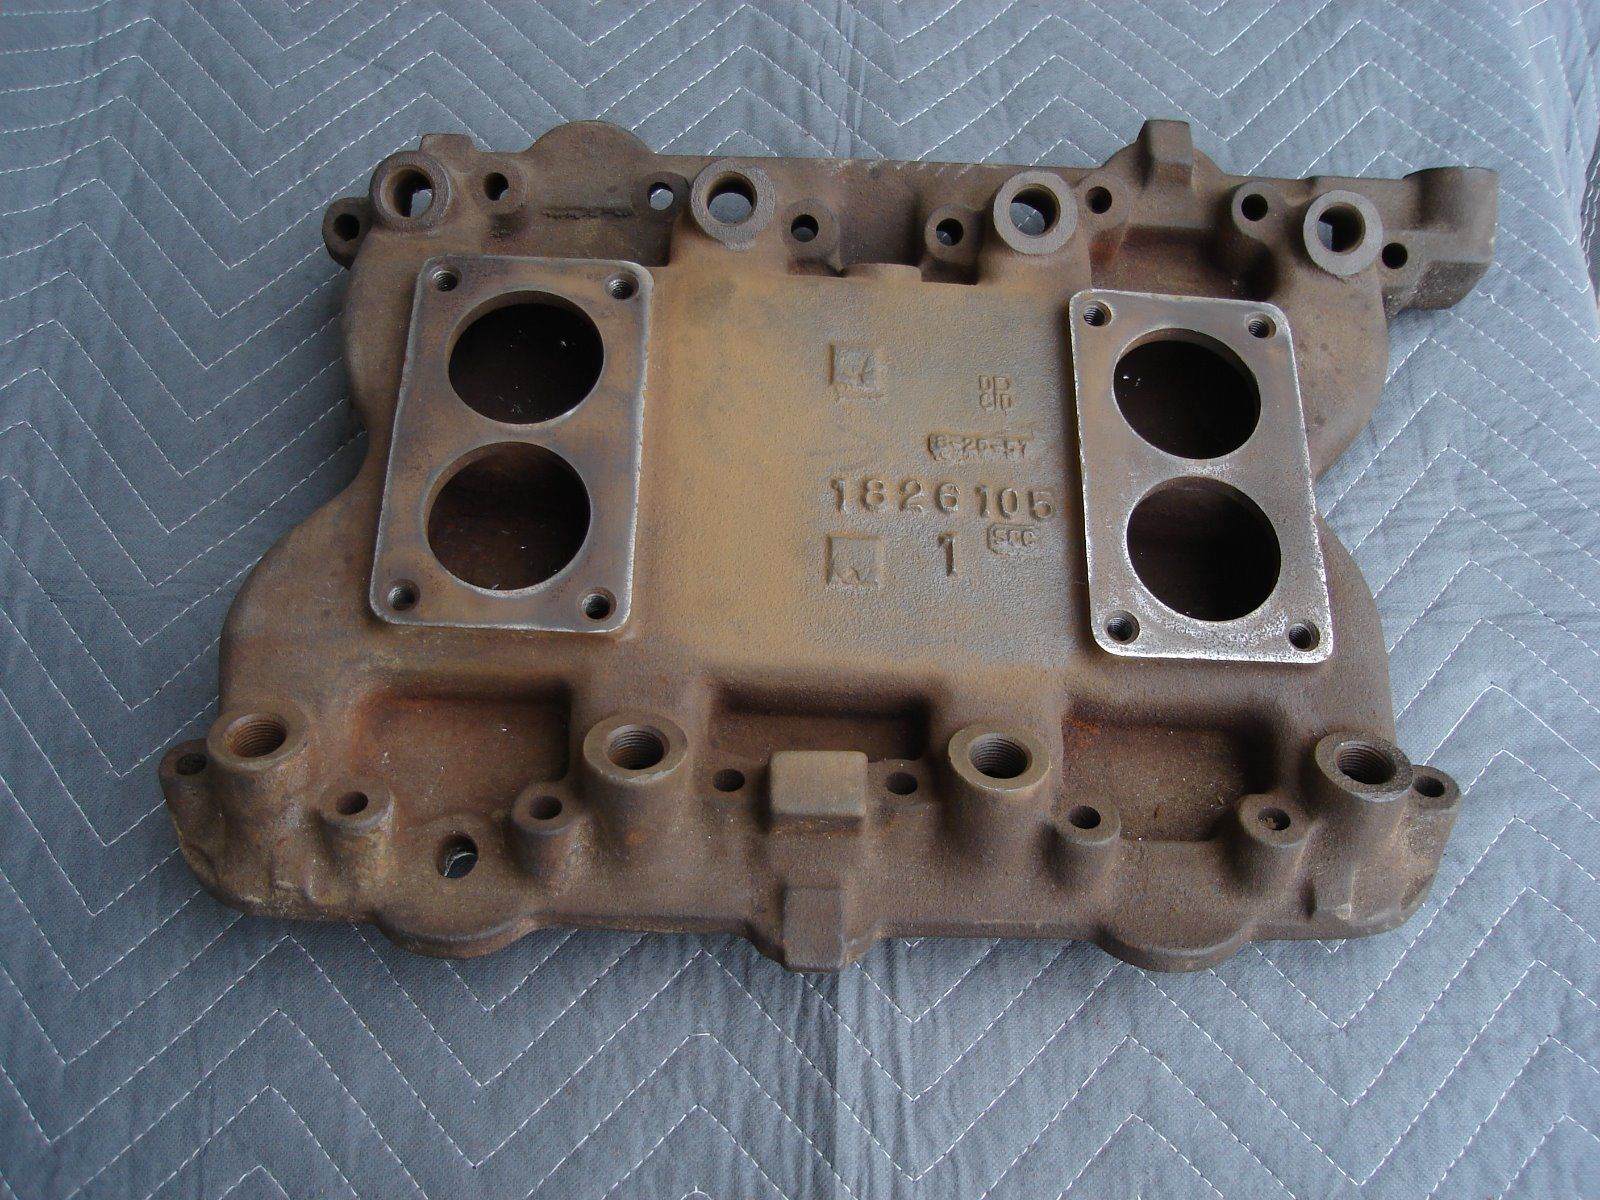 The Most Rare Factory Hemi Intake Manifold Ever Just Showed Up For Sale On eBay